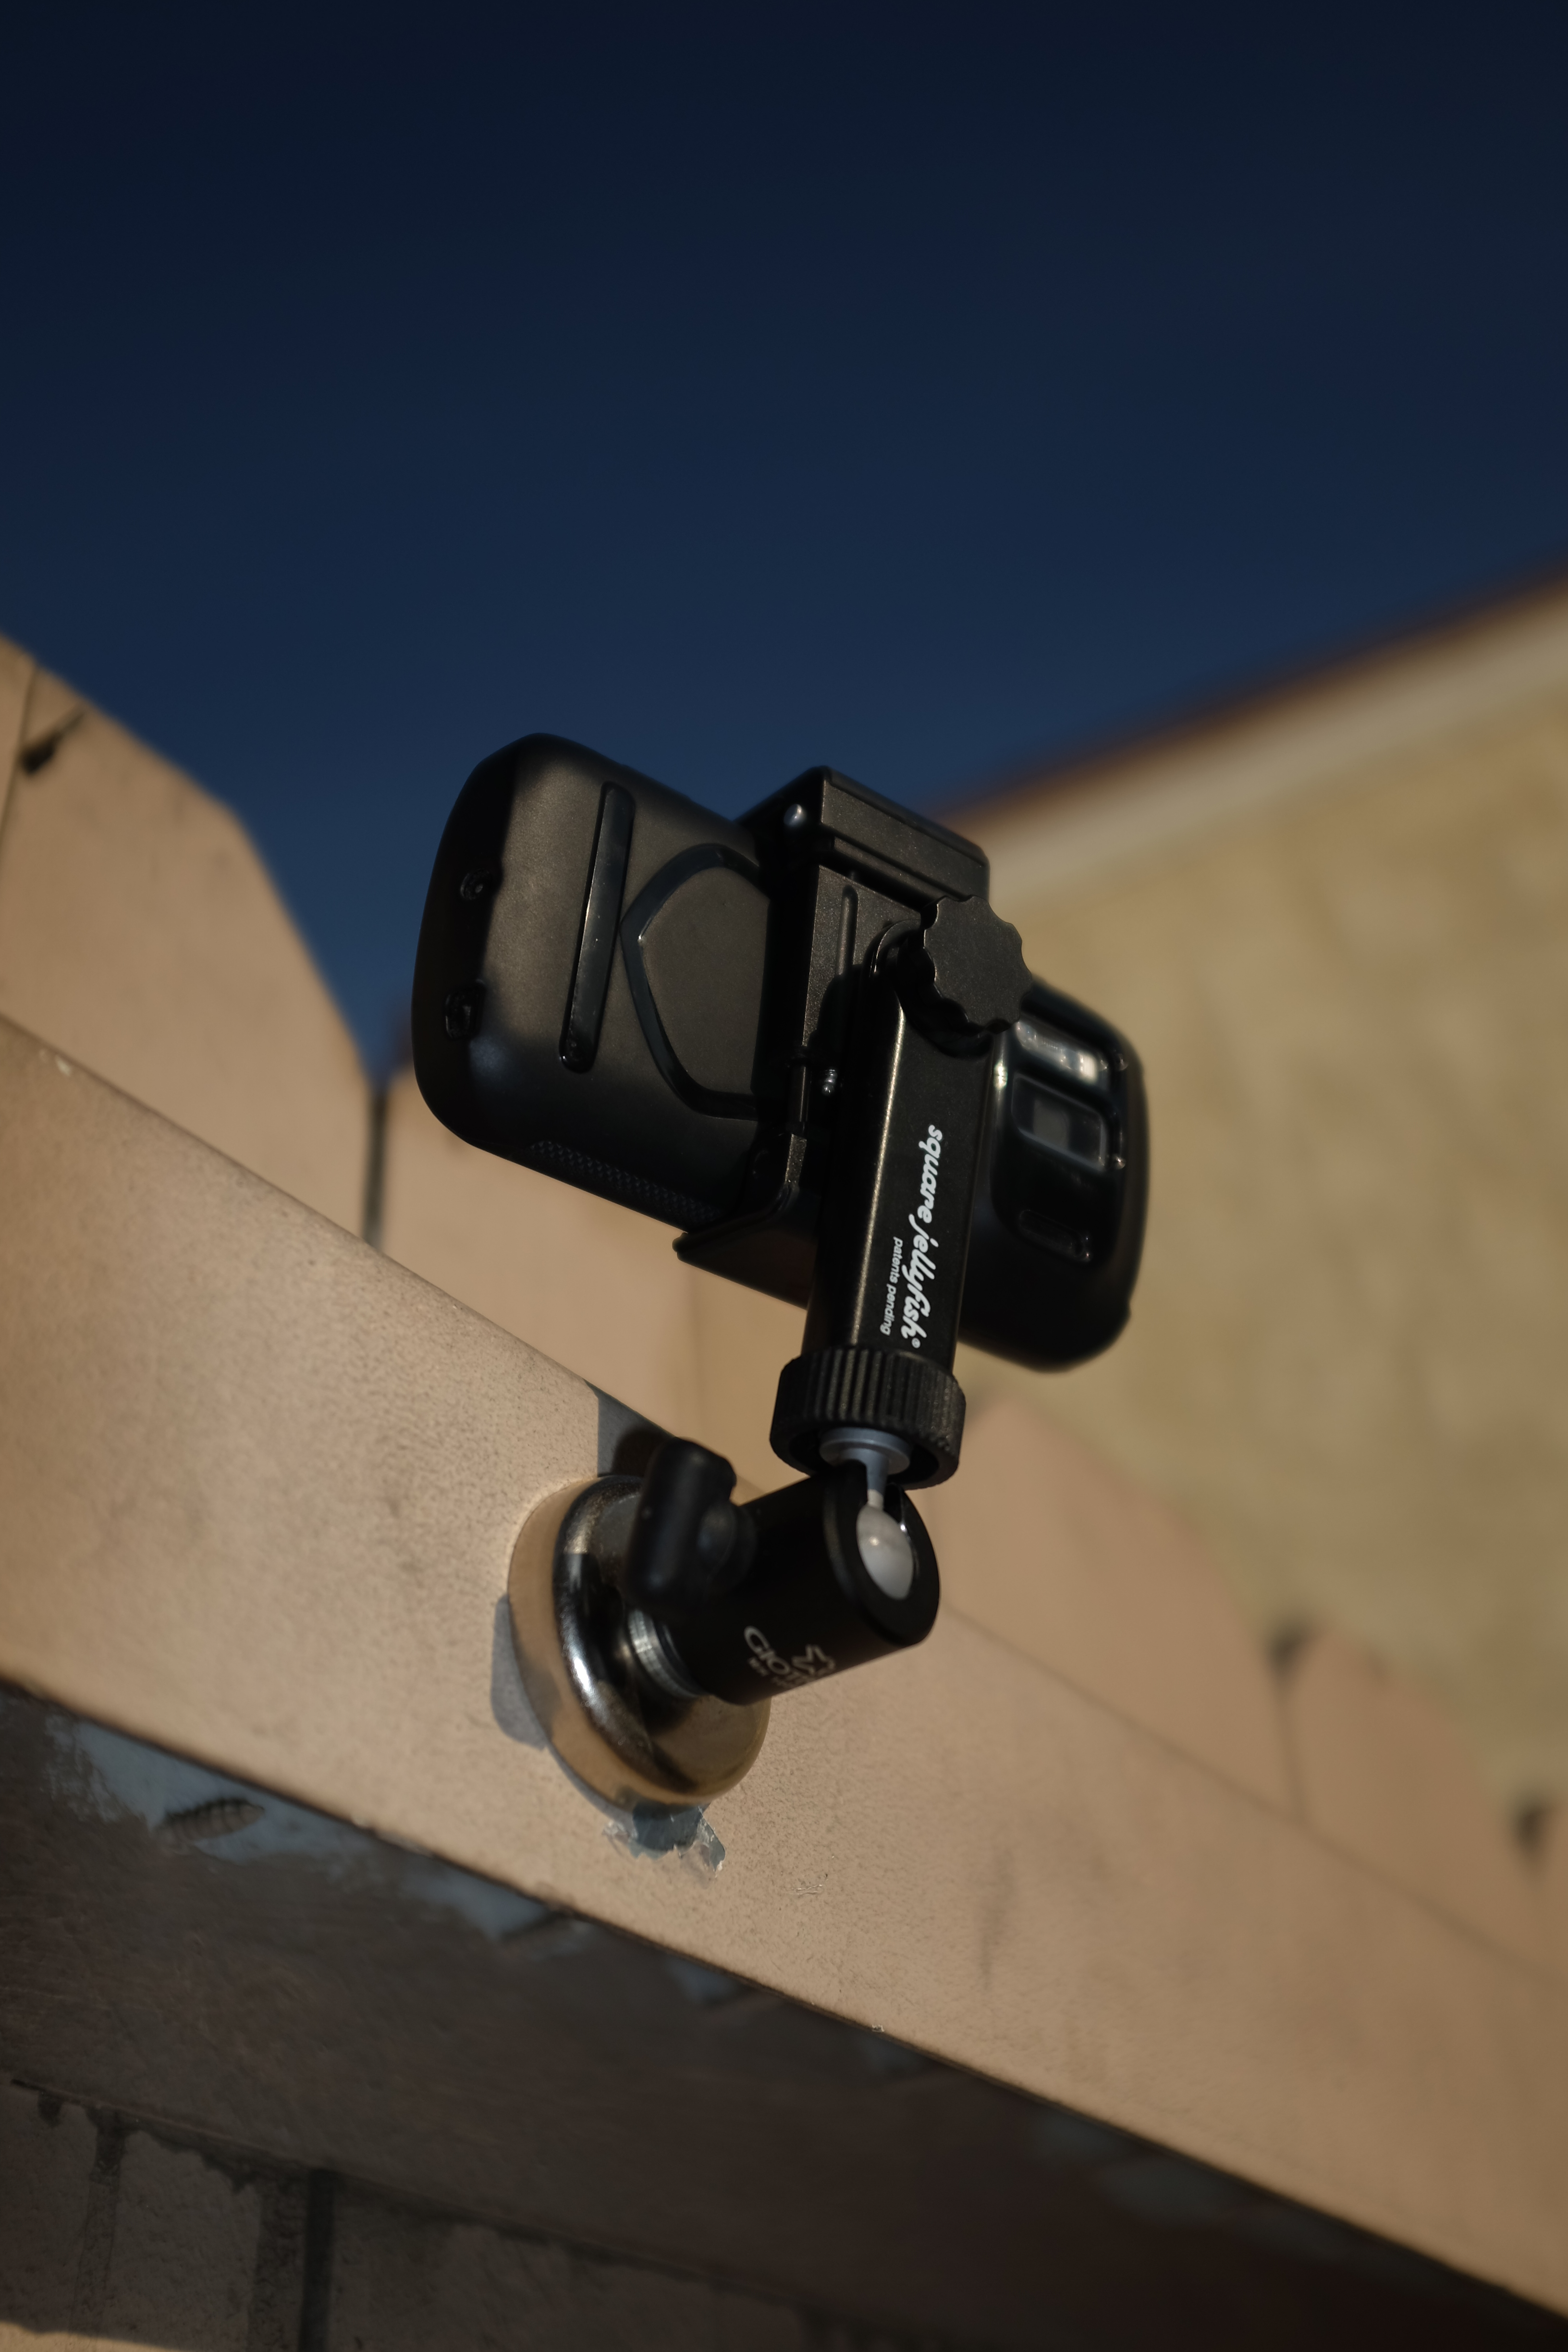 Picture of Very Strong Magnetic Camera Mount